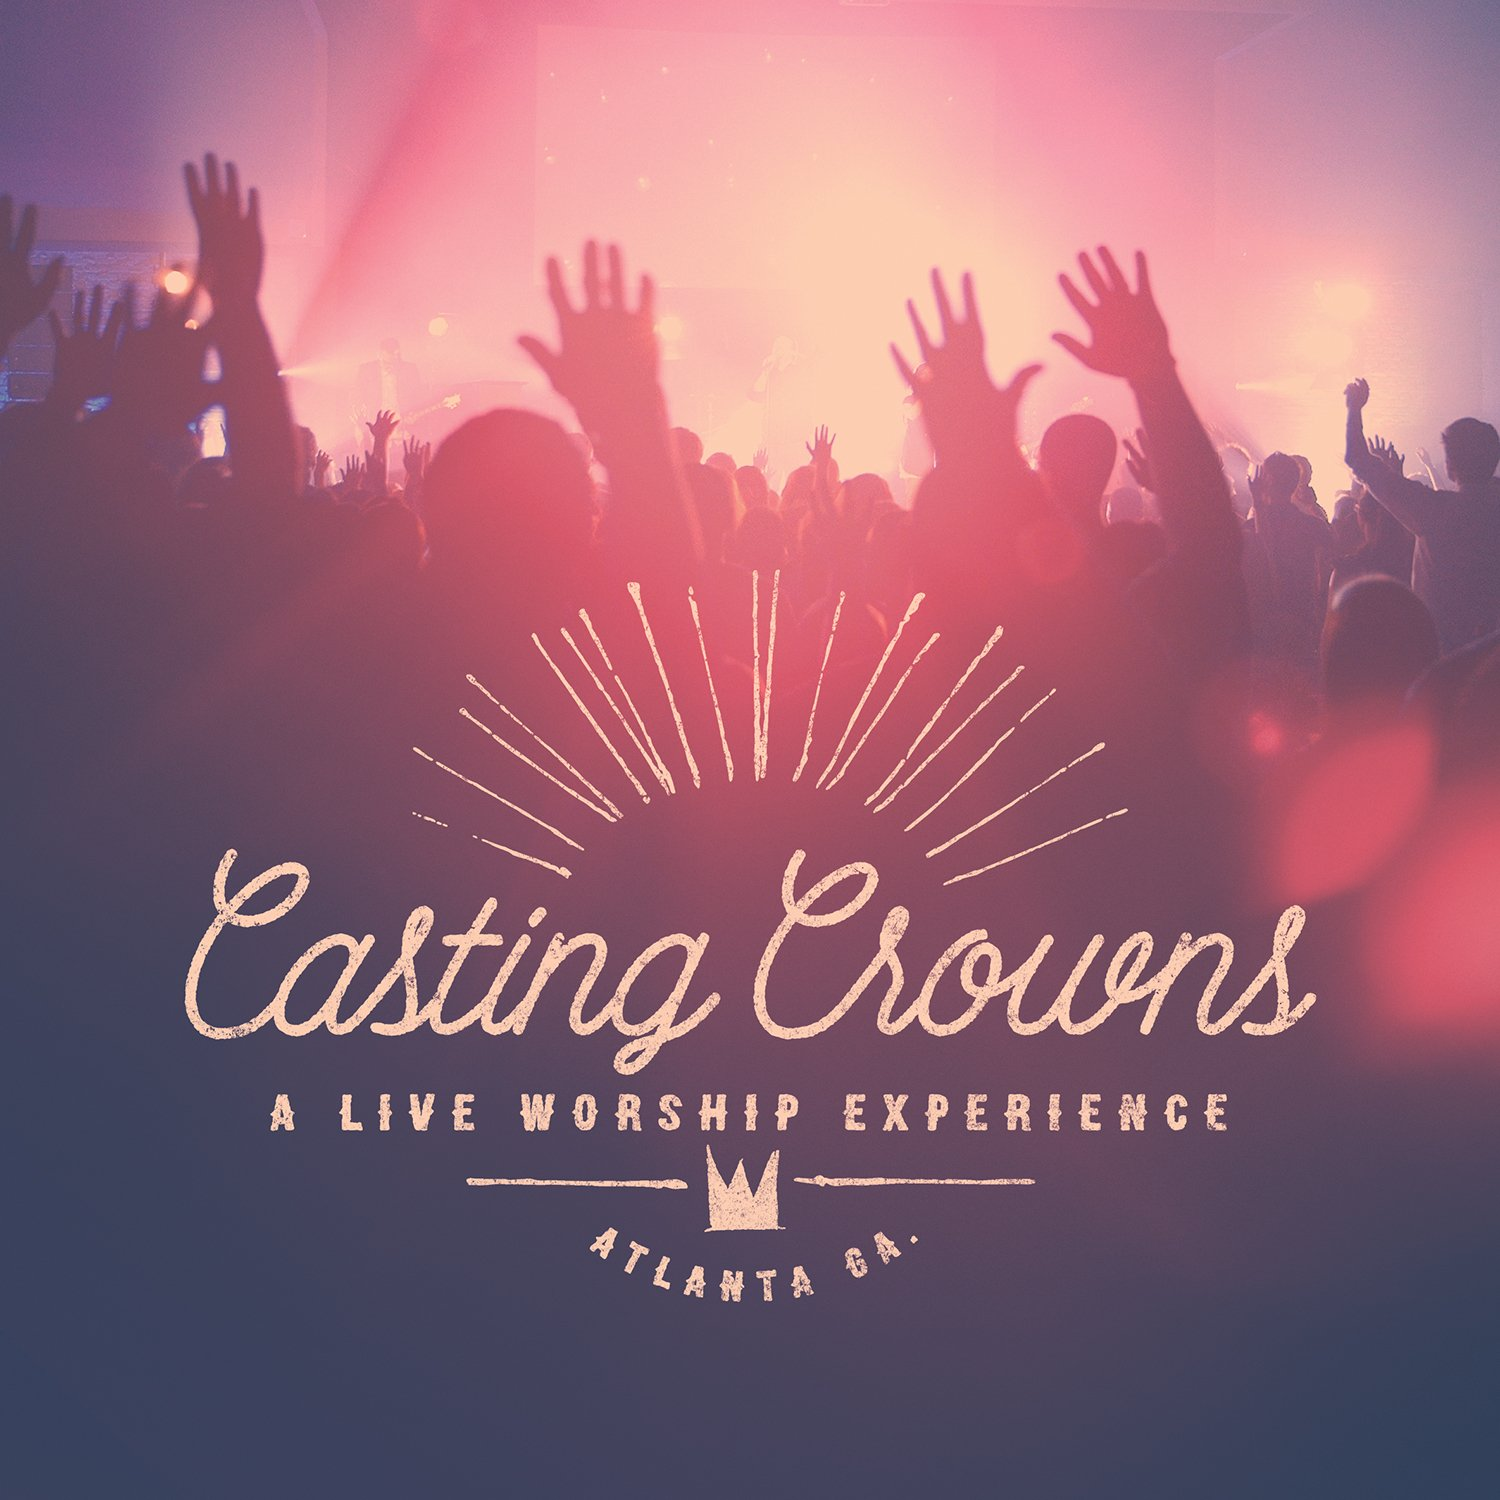 CD : Casting Crowns - A Live Worship Experience (CD)